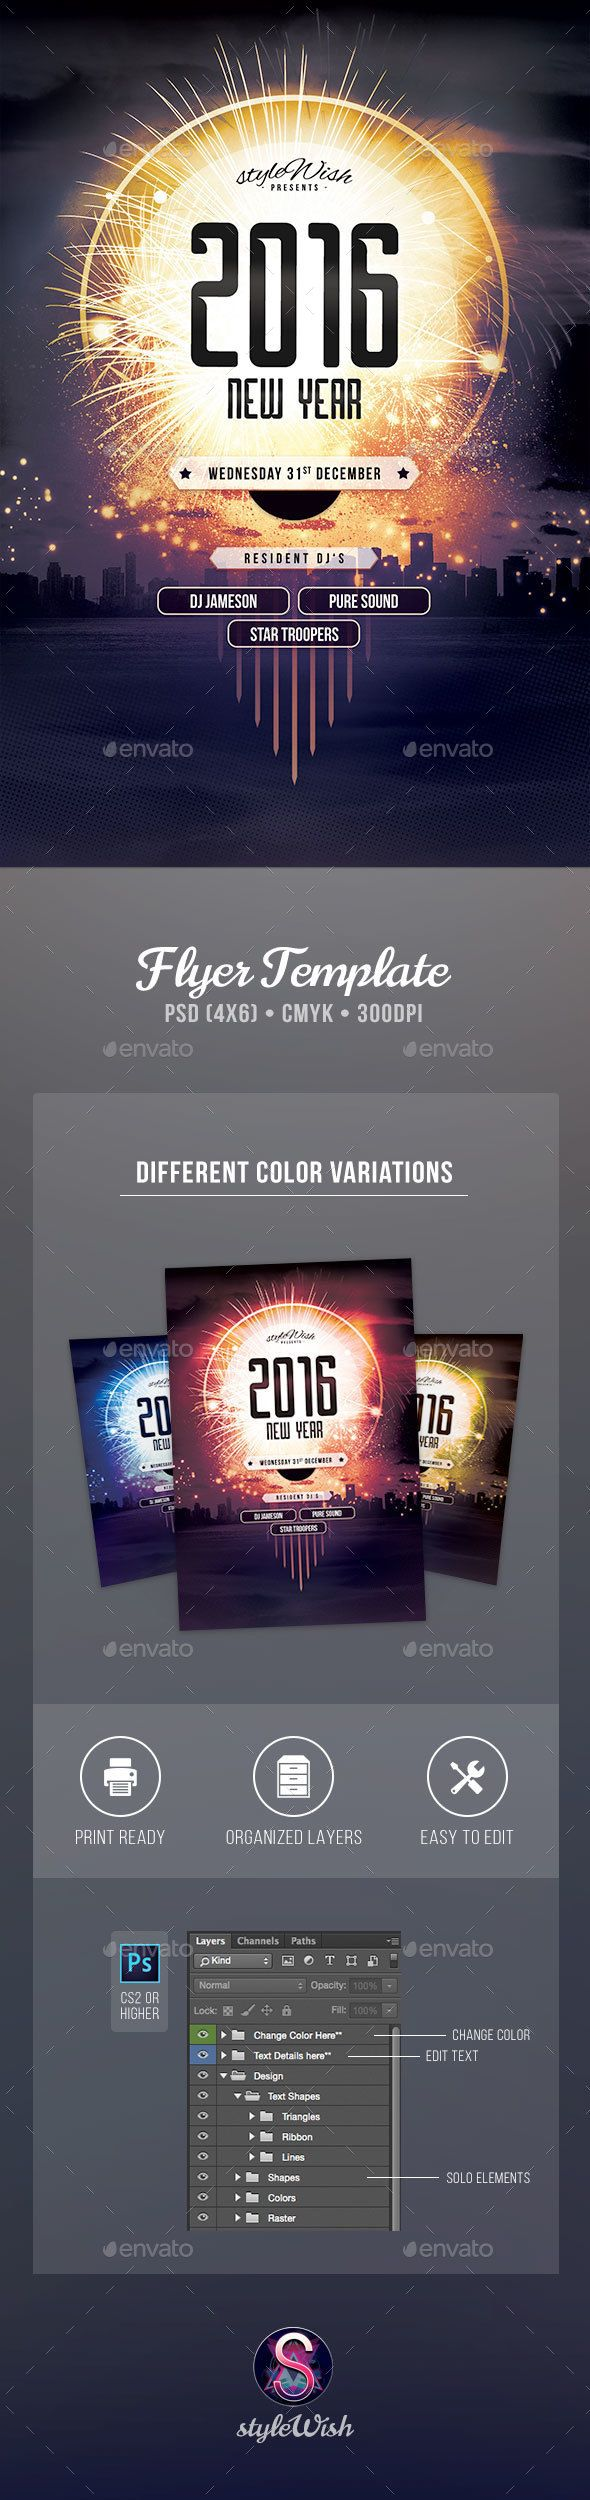 New Year Flyer Template PSD #design Download: http://graphicriver.net/item/new-year-flyer/13609453?ref=ksioks